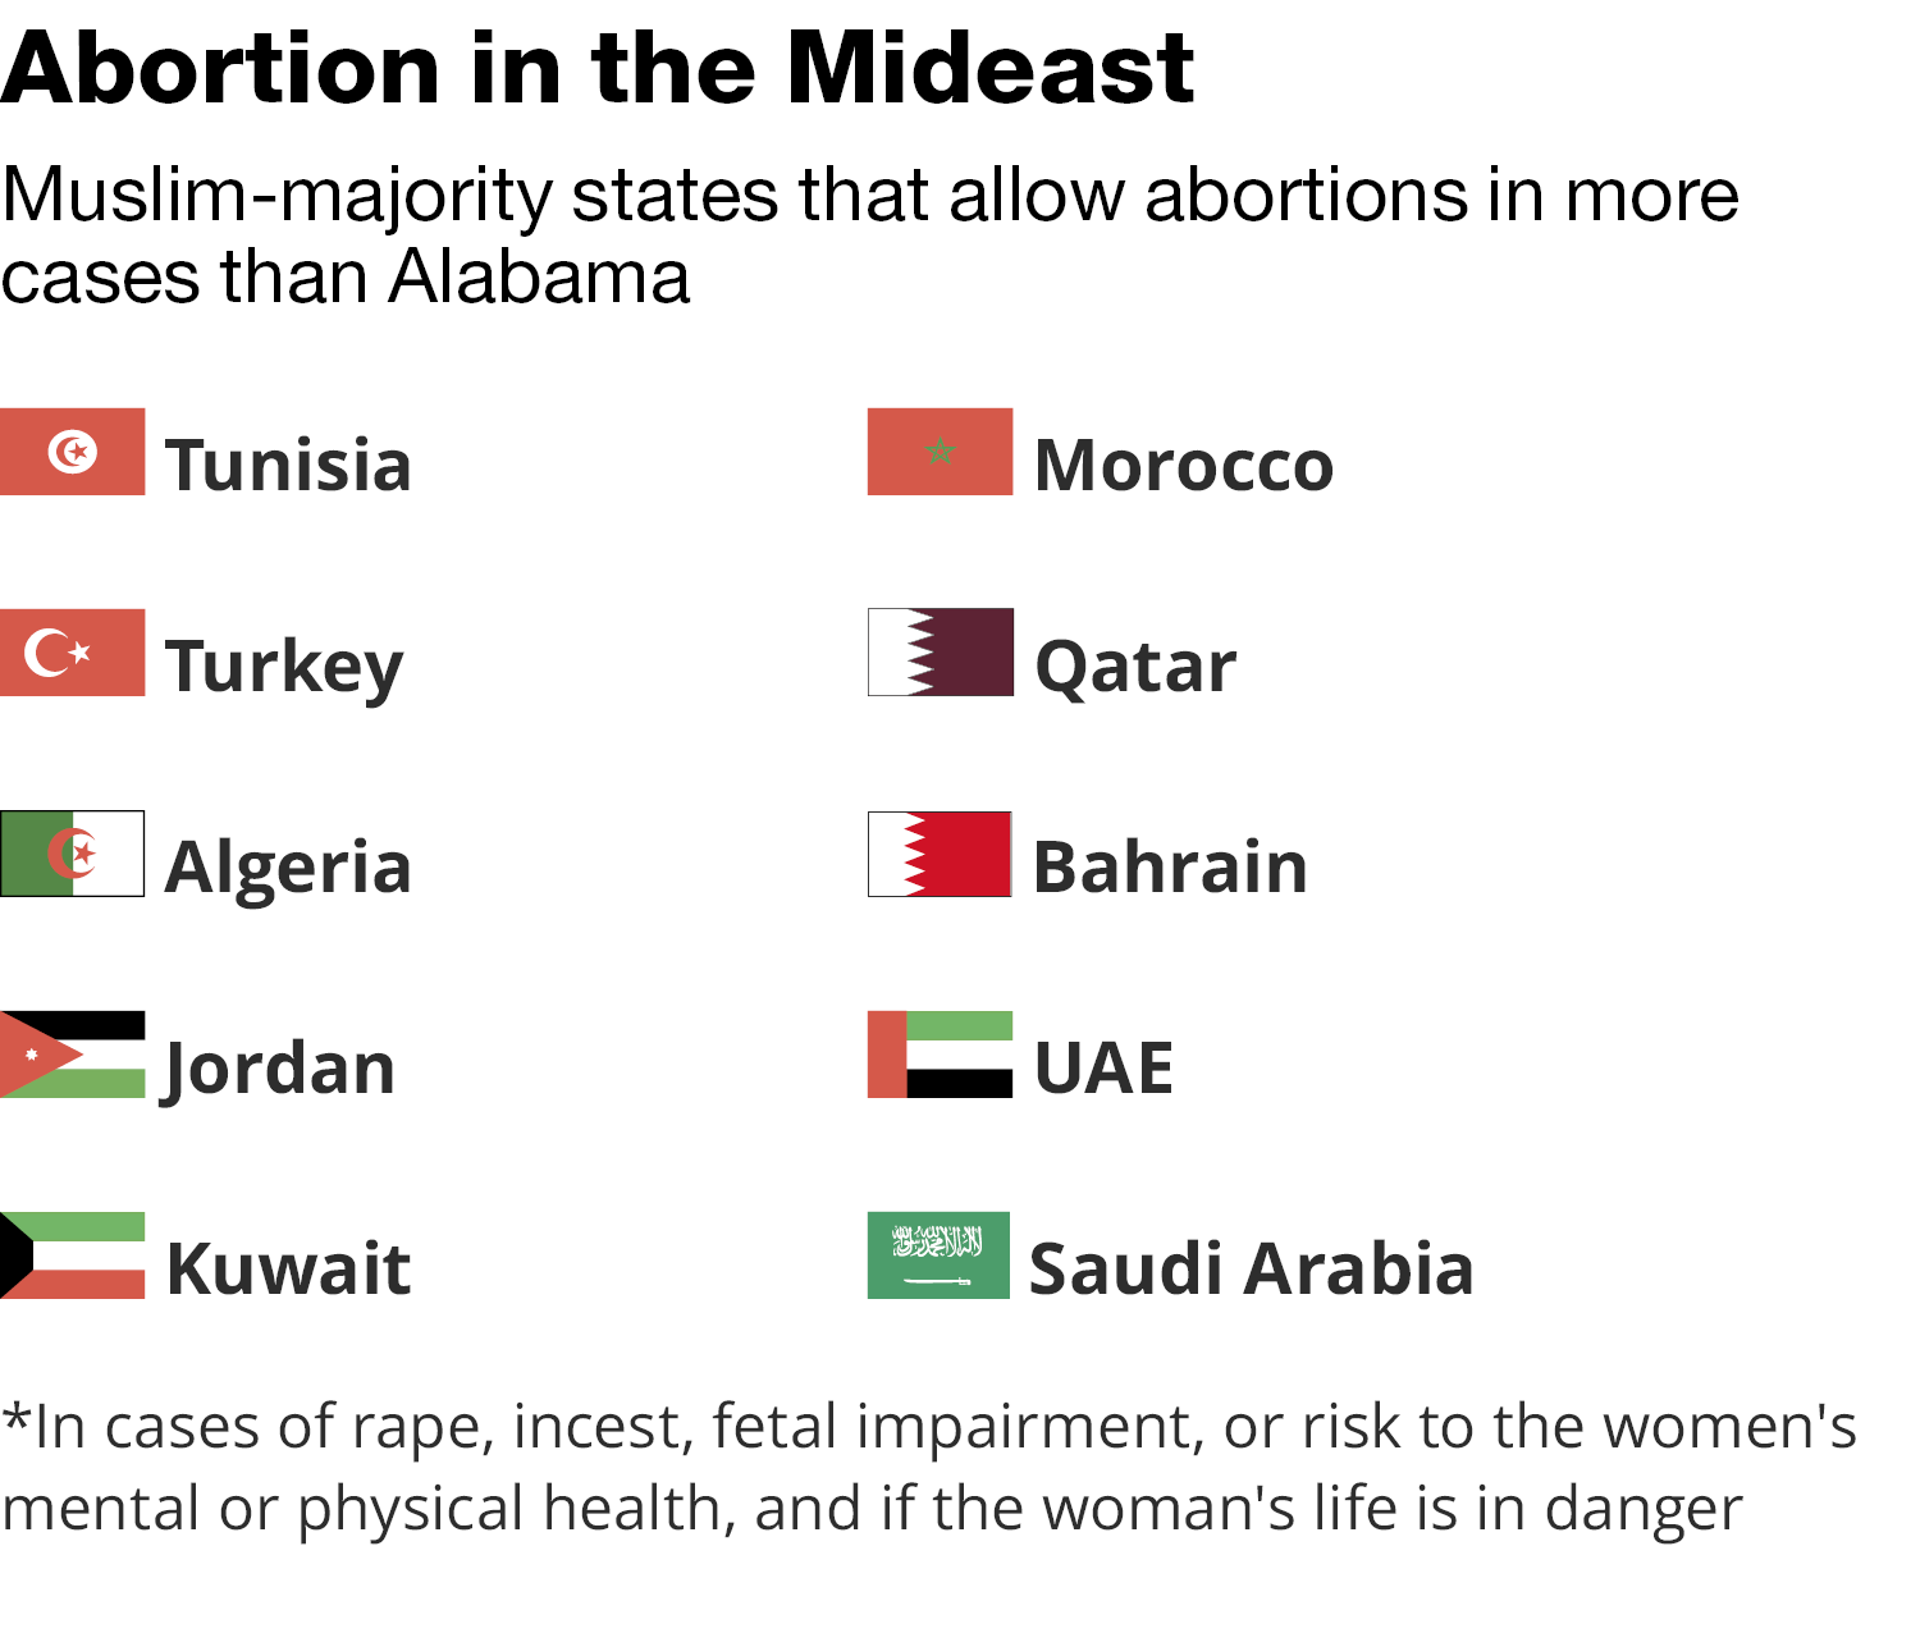 Info abortions in the mideast